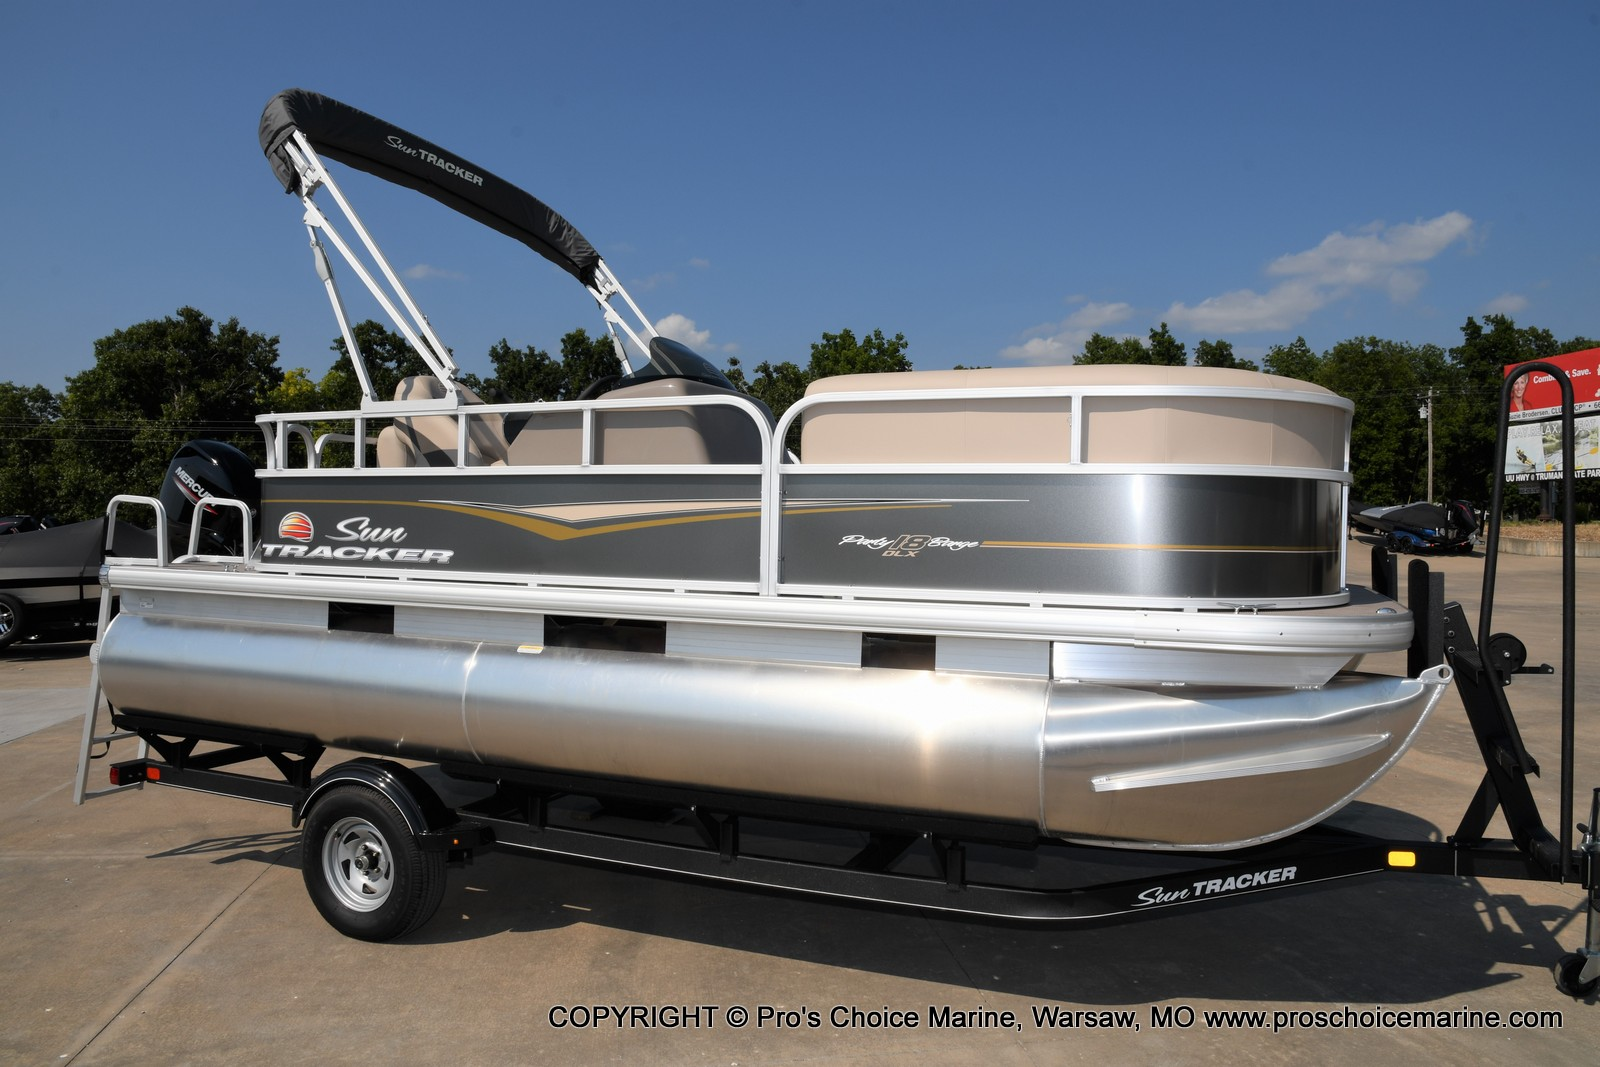 2021 Sun Tracker boat for sale, model of the boat is Party Barge 18 DLX & Image # 28 of 50